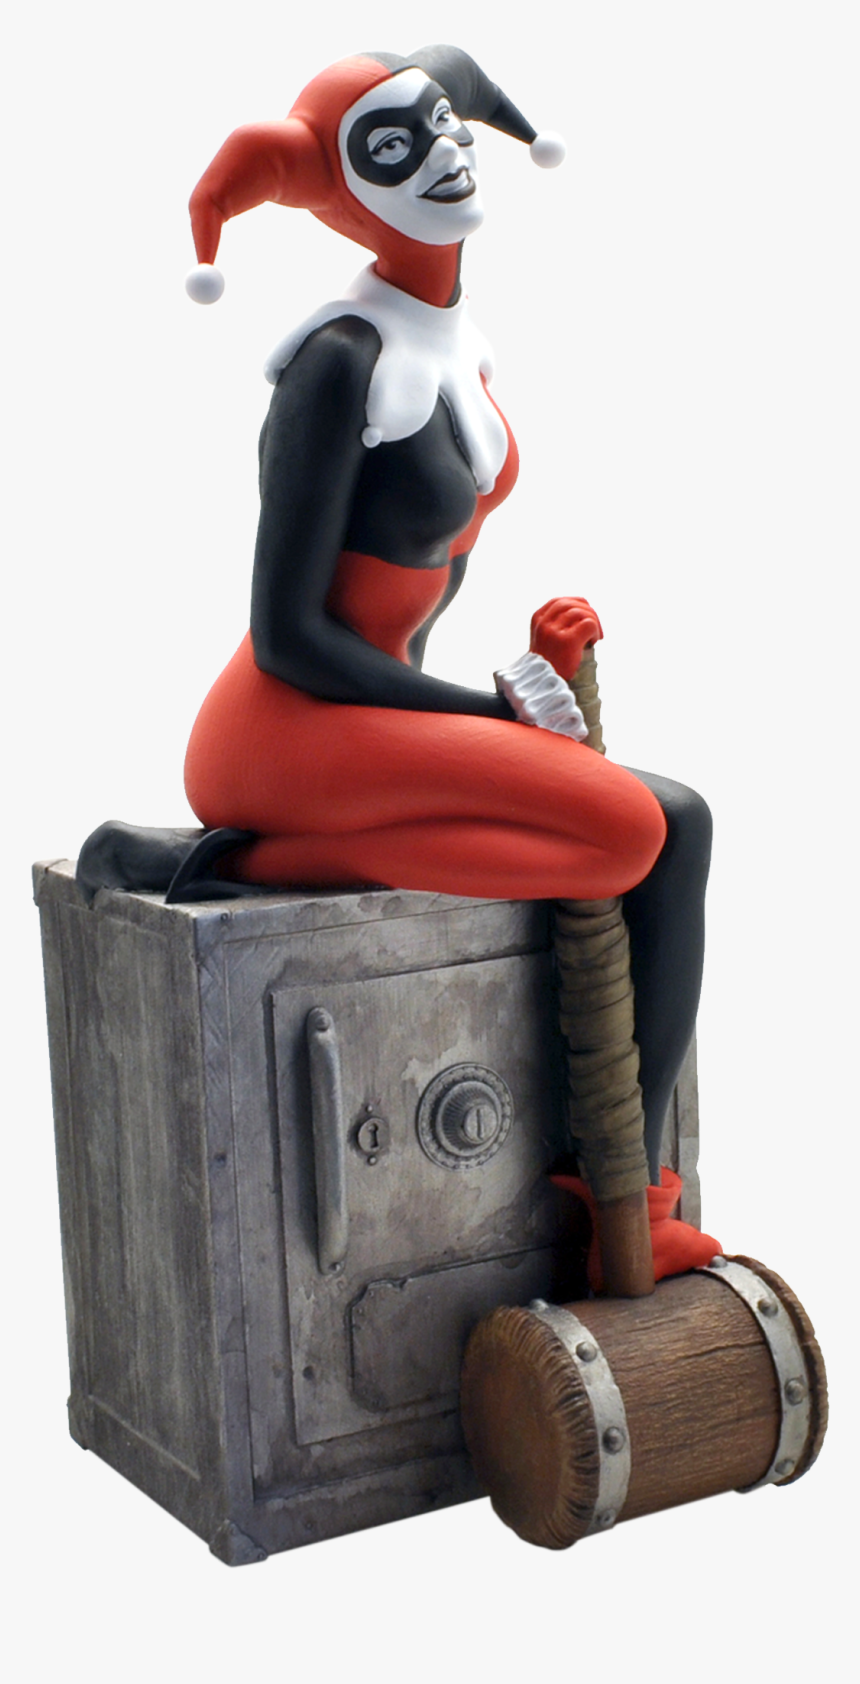 Dc Comics Bust Bank Harley Quinn, HD Png Download, Free Download